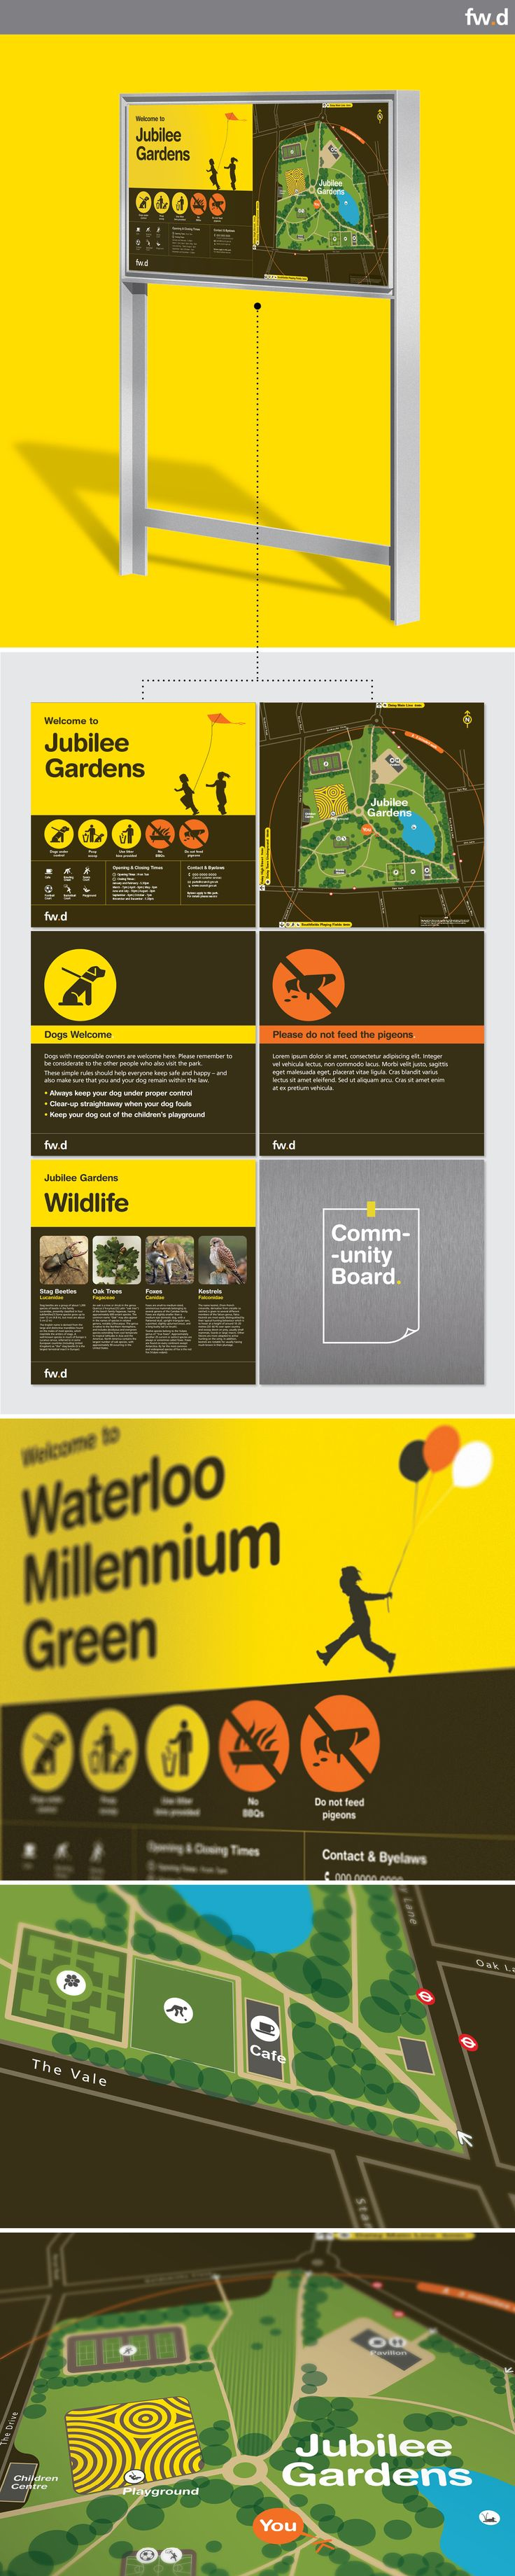 Bright & attractive graphics for park signage by fwdesign, designed as part of the modular Daisy family. www.fwdesign.com #park #signage #graphics